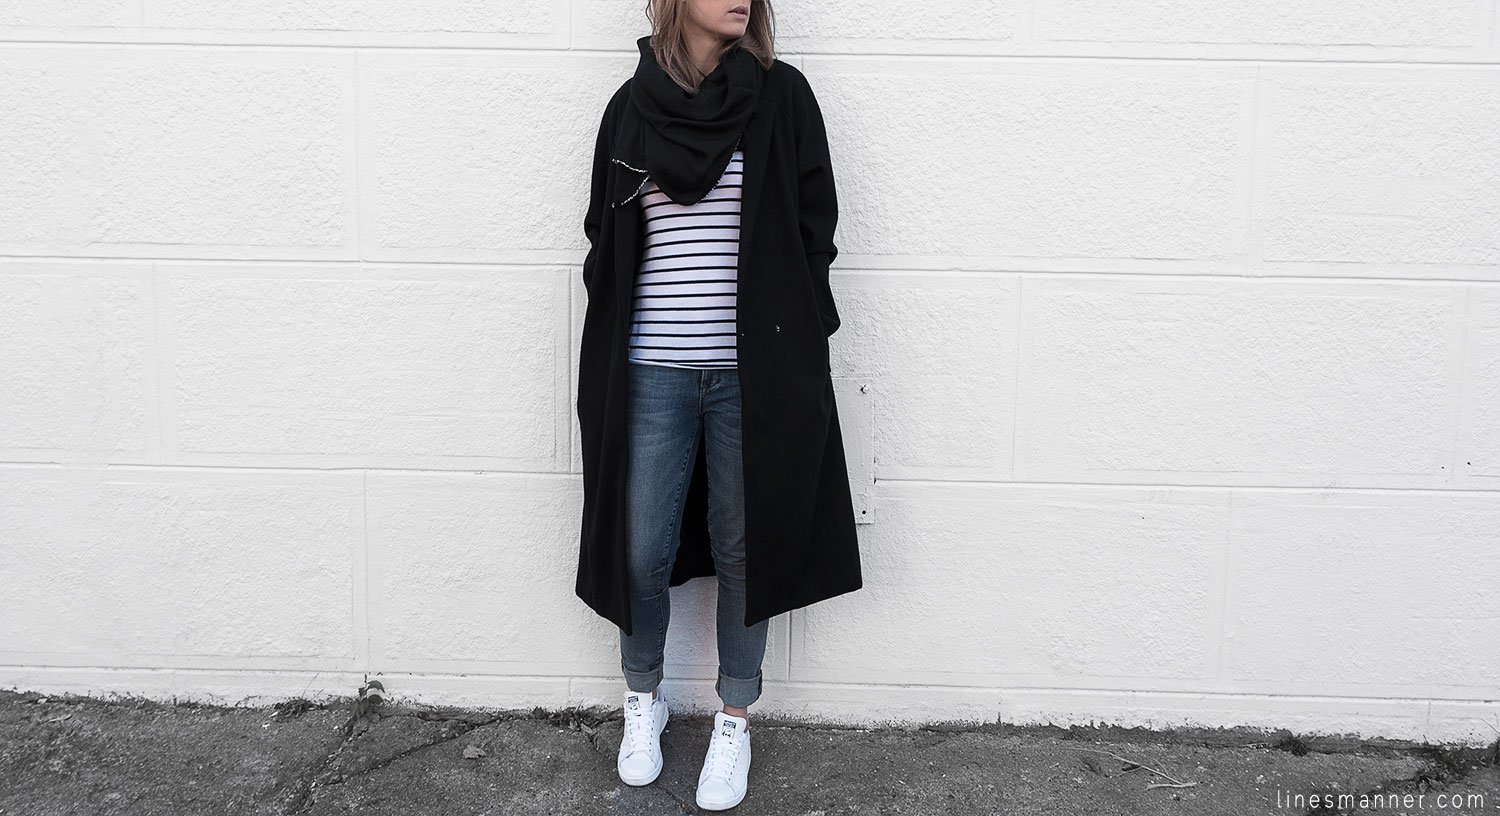 Lines-Manner-Timeless-Refined-Comfort-Minimal-Textures-Fall-Details-Simplicity-Stripes-Marinière-Essential-Outfit-Basic-Staple-Denim-8